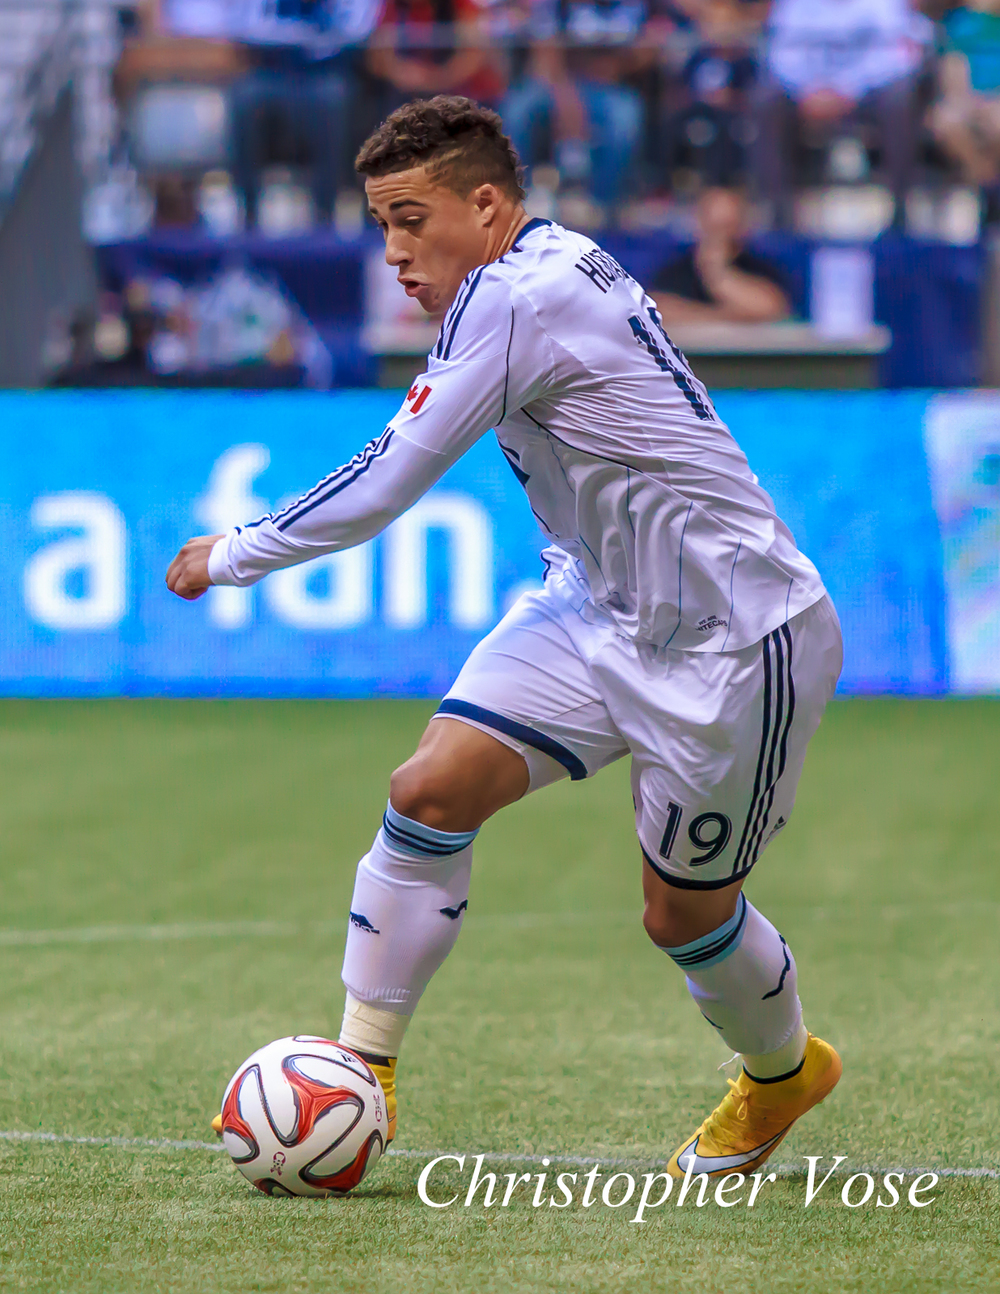 Erik Hurtado performed a valueable service in holding the ball up near the box and letting the midfielders get into the play leading to the first goal.